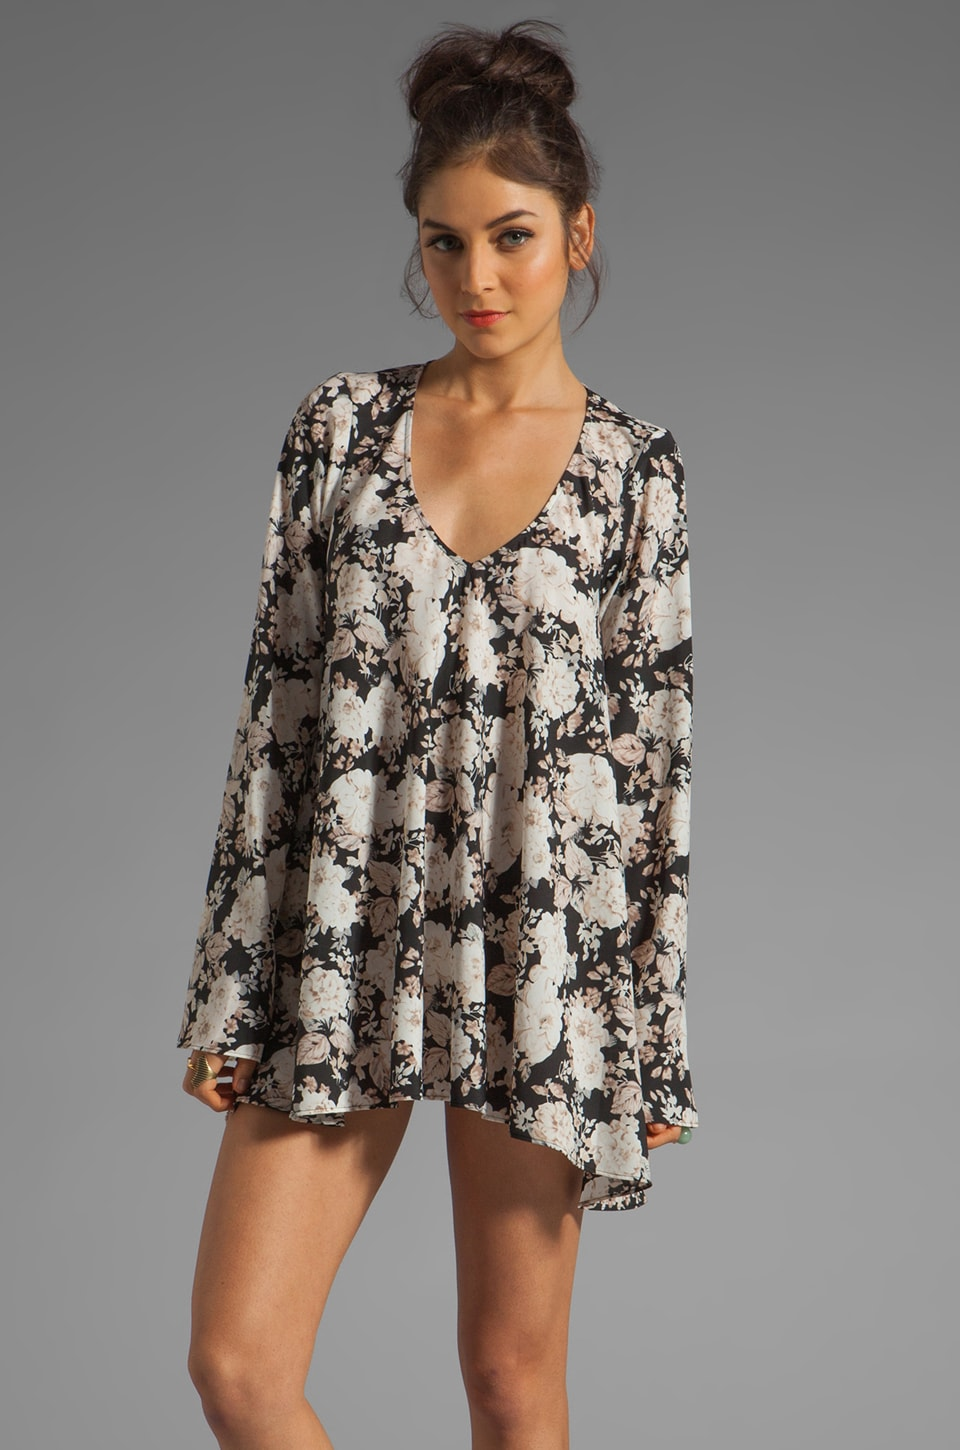 For Love & Lemons Daytripper Dress in Black Floral